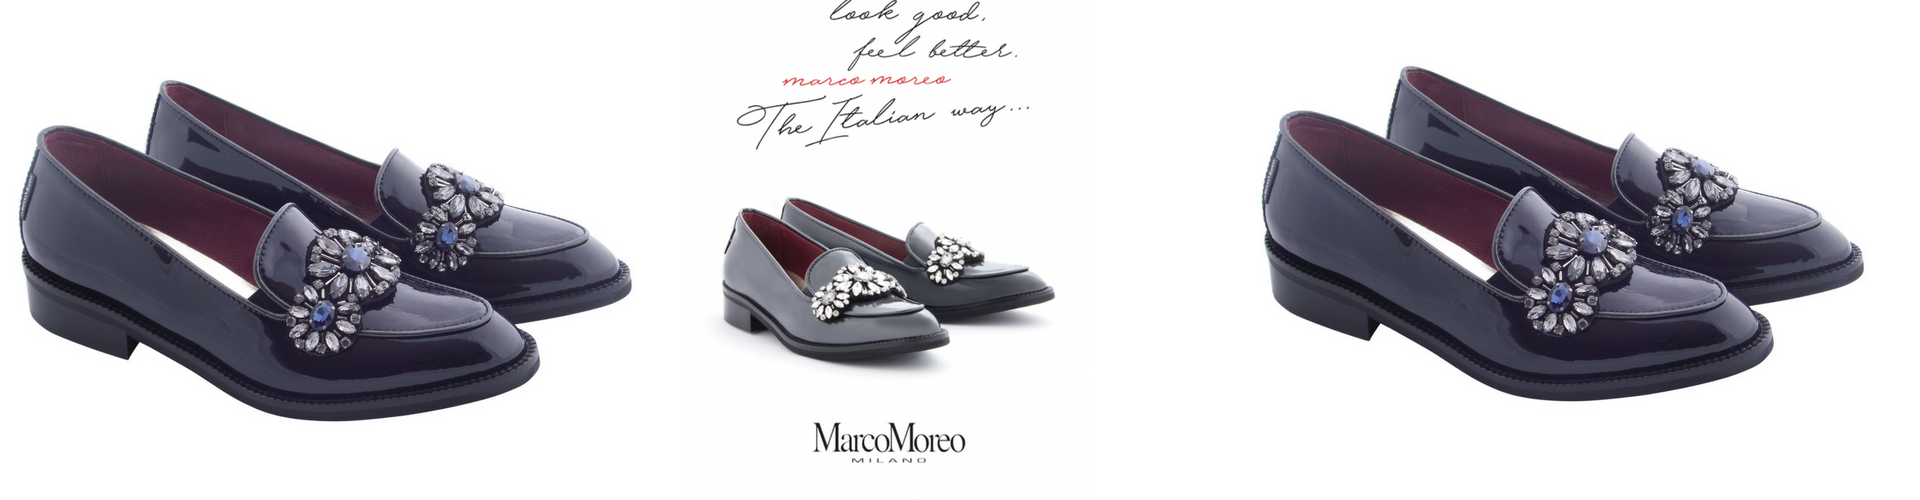 Marco Moreo classic patent  loafer